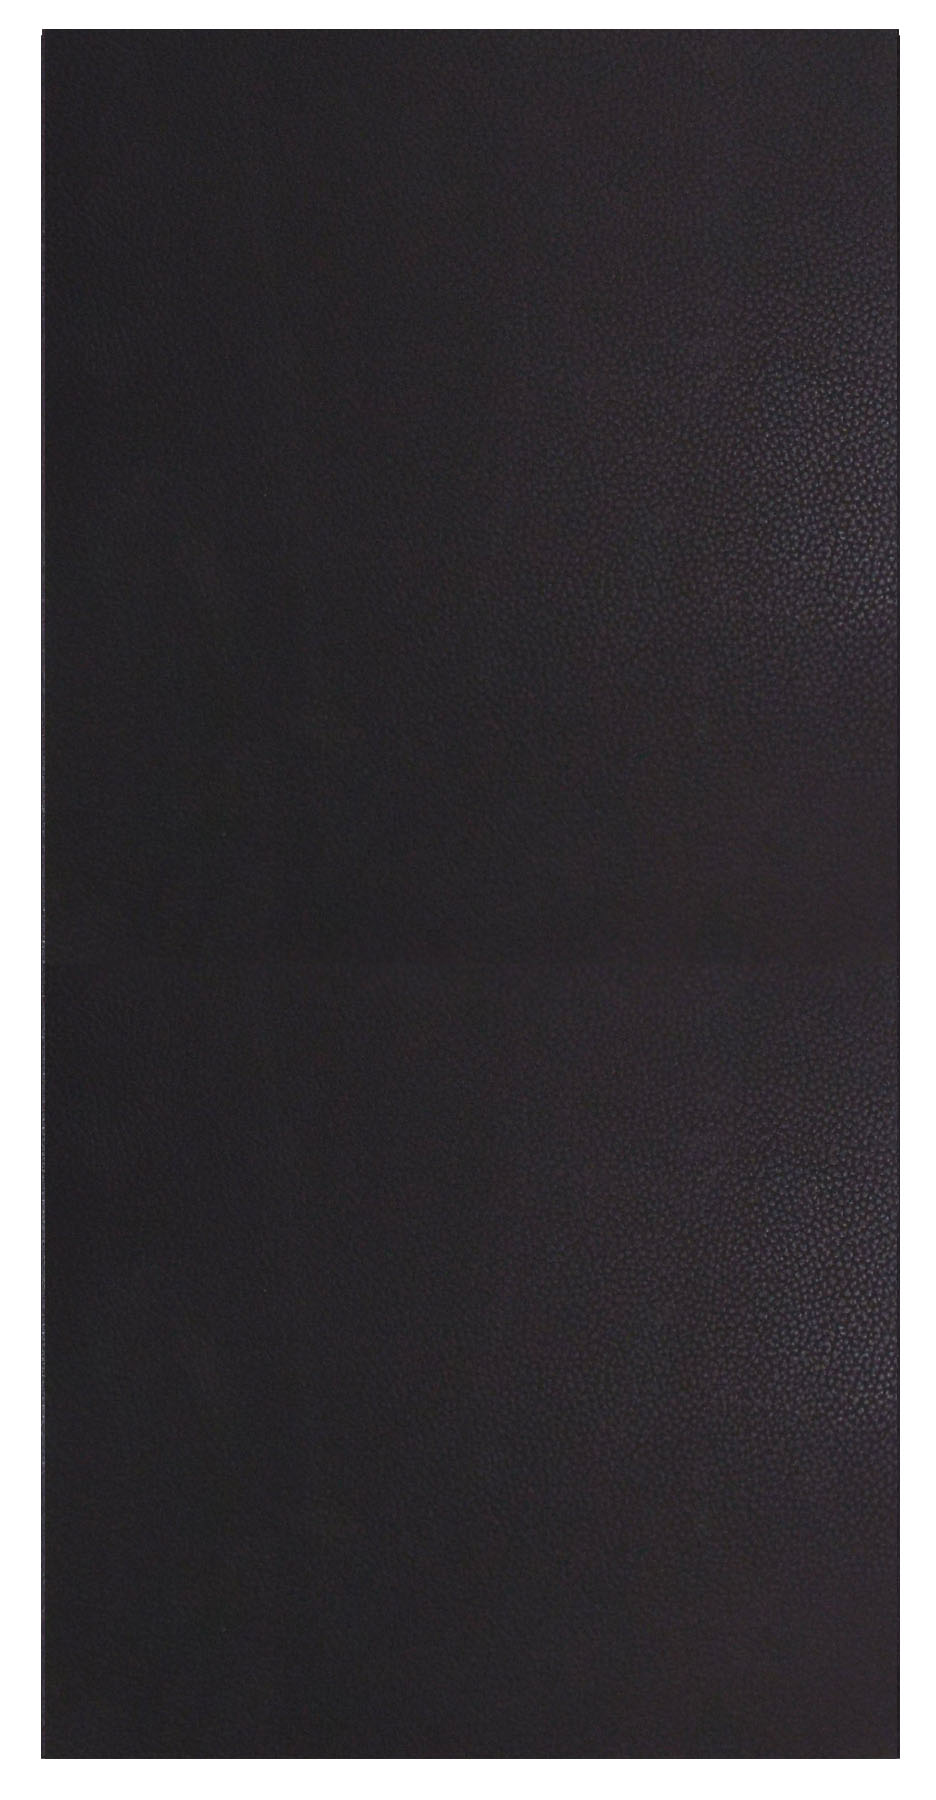 "GLAMOUR LEATHER 12""X24"" - GLAZED PORCELAIN  8 PC/CTN (15.5 SF); 40 CTN/PLT"